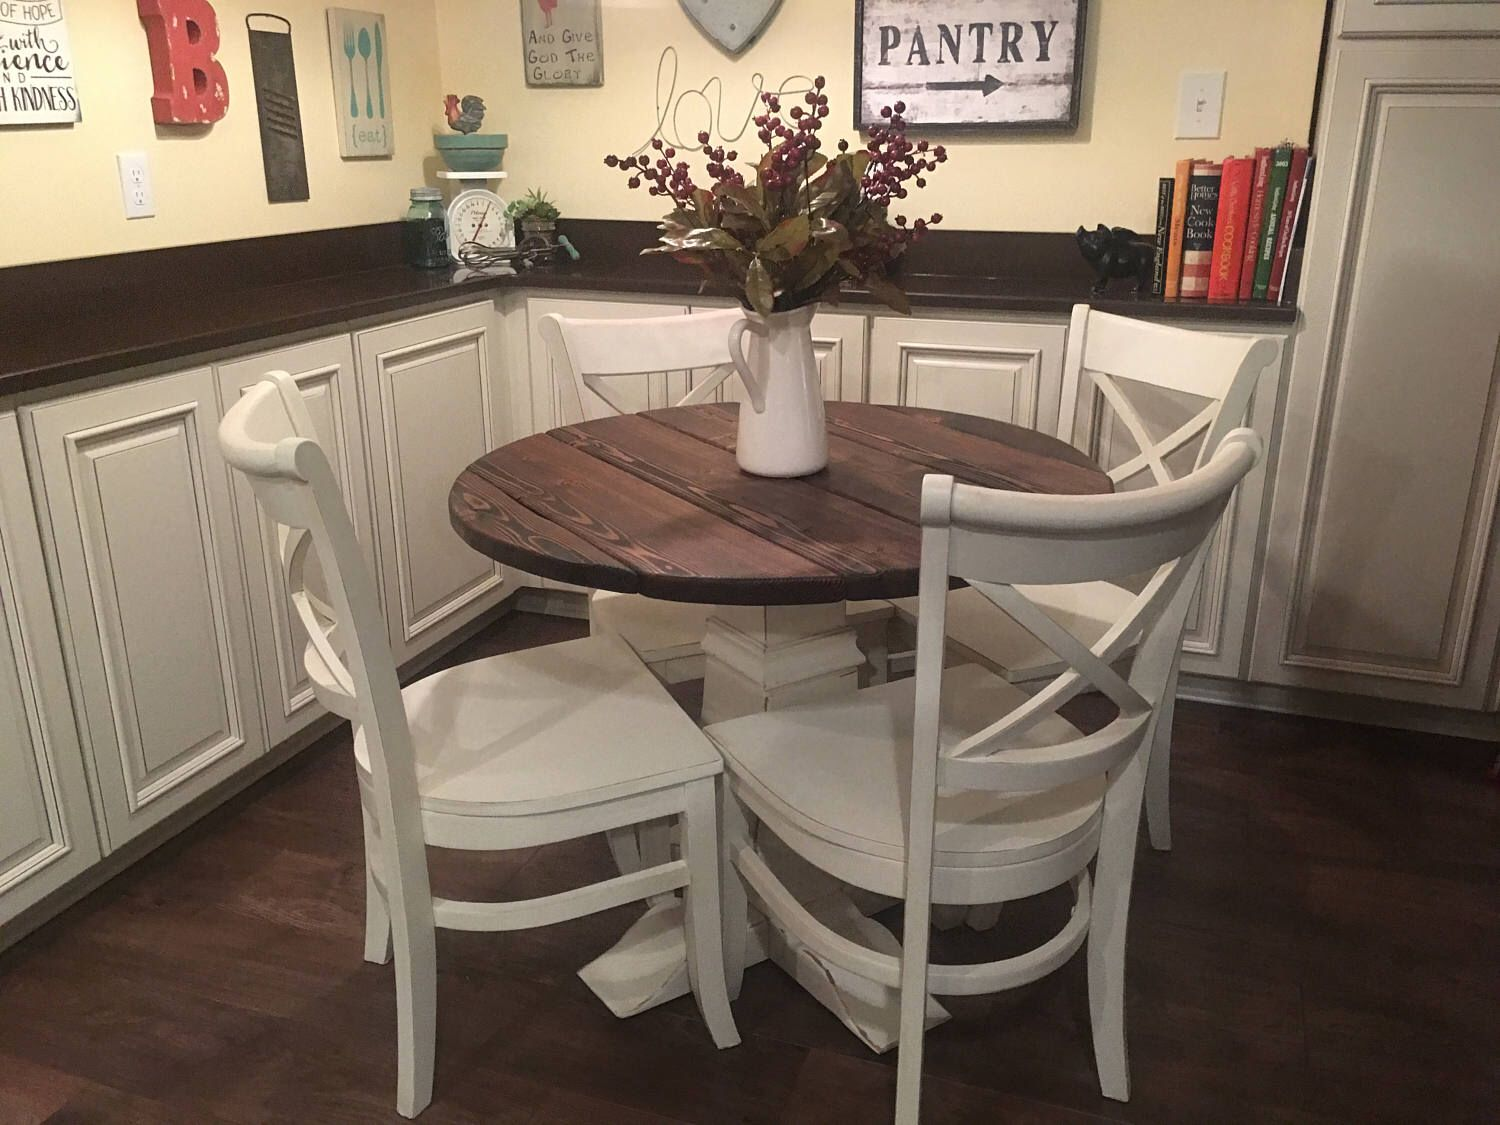 Ordinaire Dining Table, Round Table, Pedestal Table, Farmhouse Table, Dining Table,  Handmade Table, French Country Table, Kitchen Table | Pinterest | French  Country ...